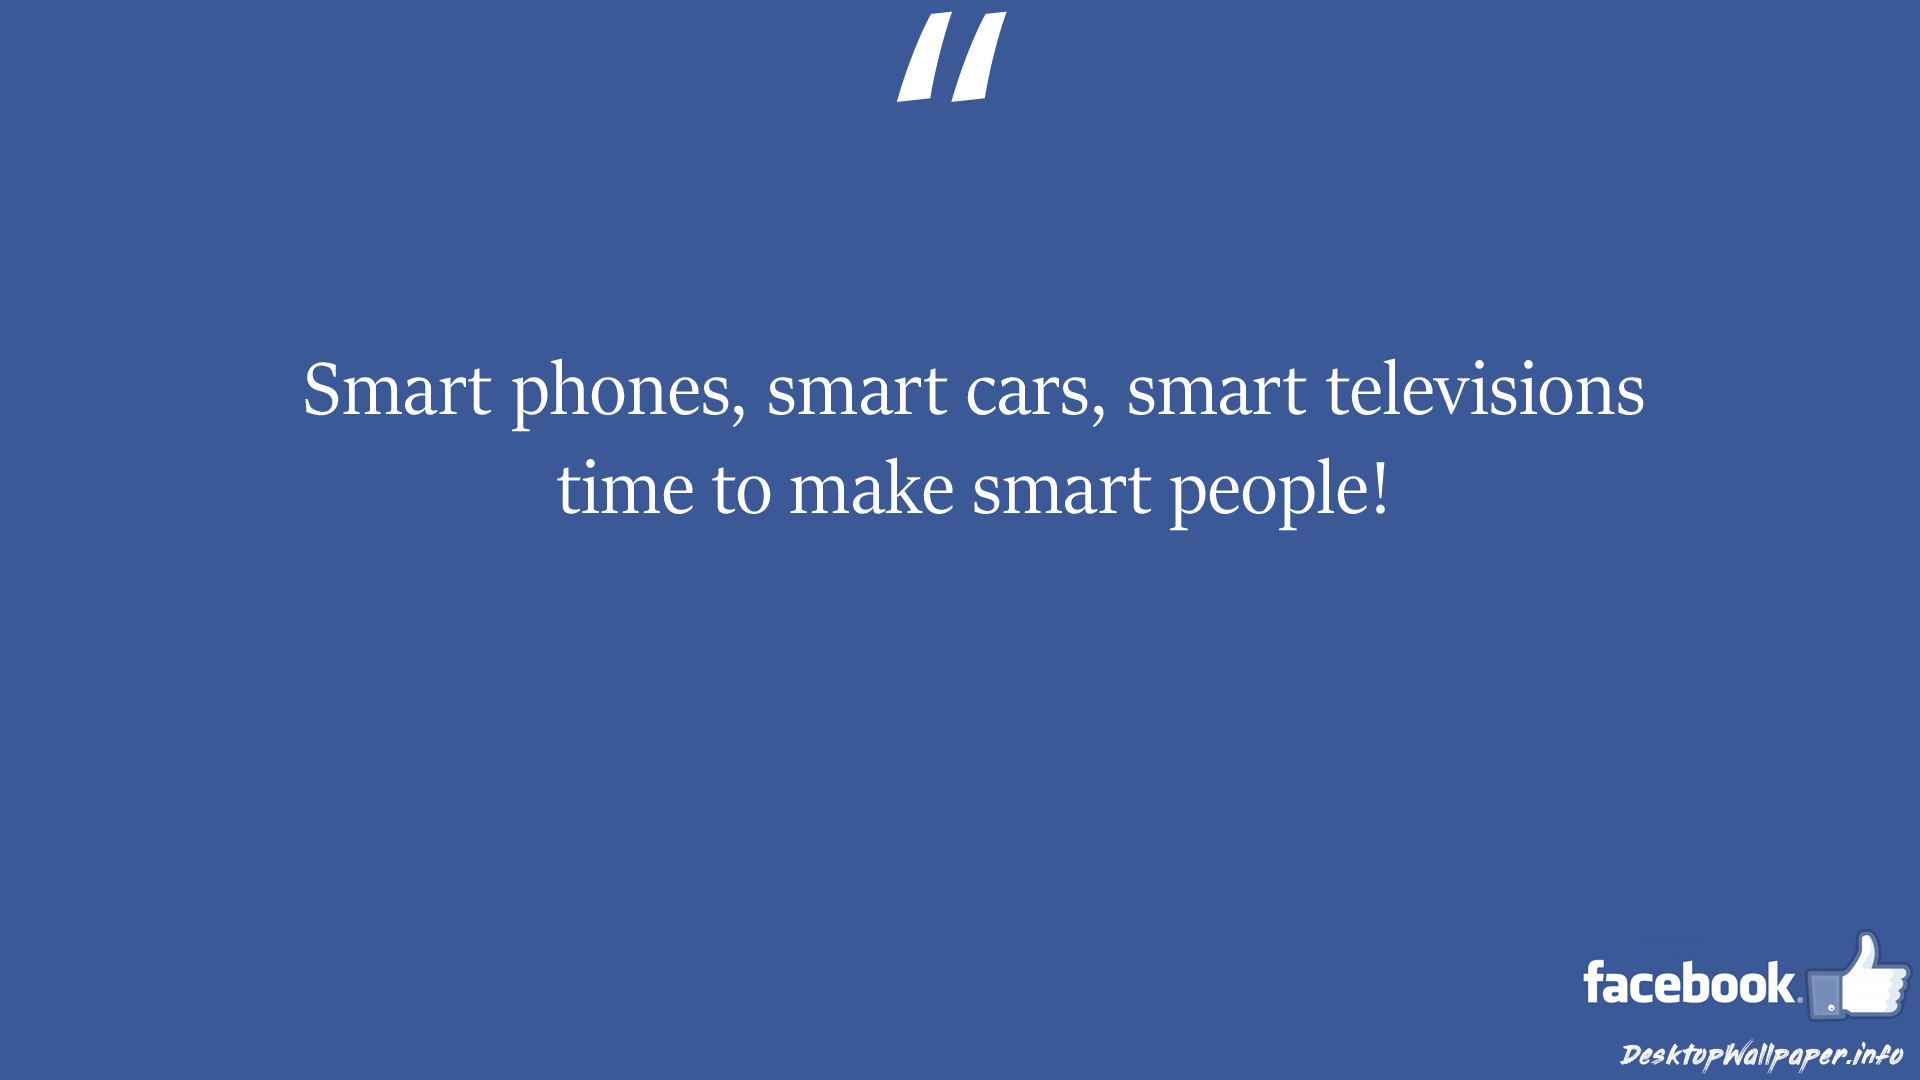 Smart phones smart cars smart televisions time to make smart people facebook status